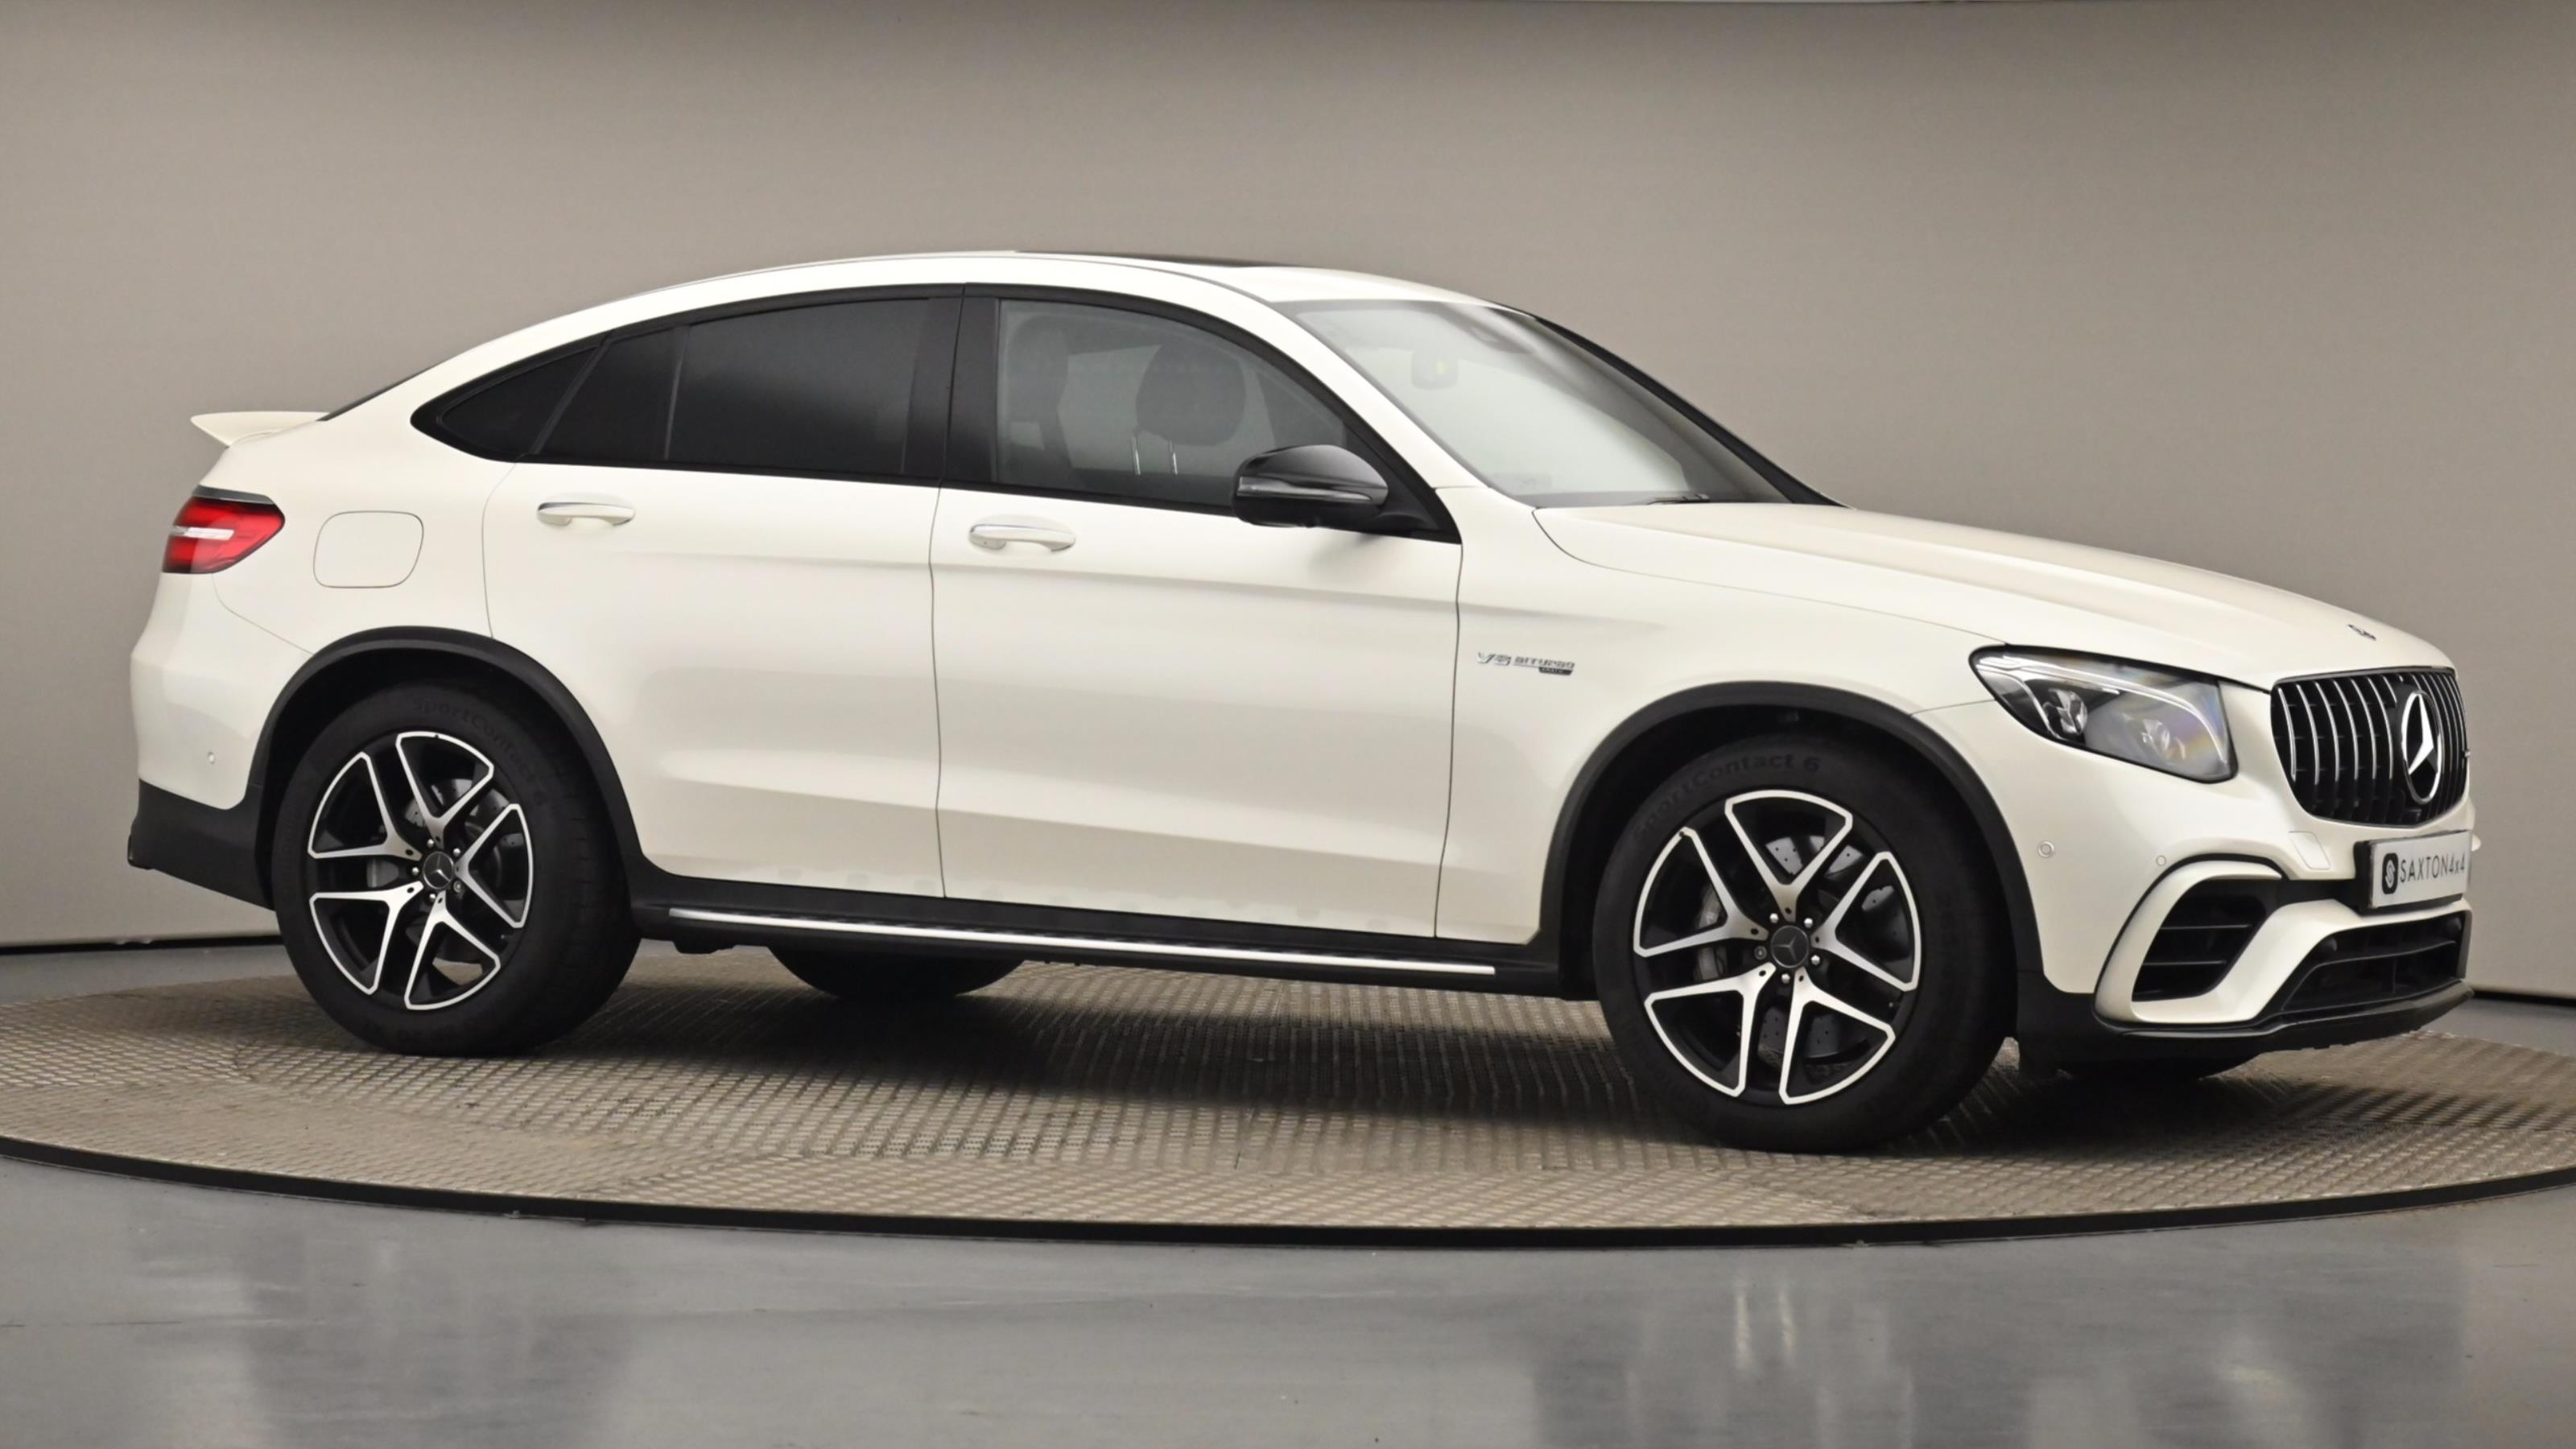 Used 2018 Mercedes-Benz GLC AMG 63 Premium 4matic WHITE at Saxton4x4